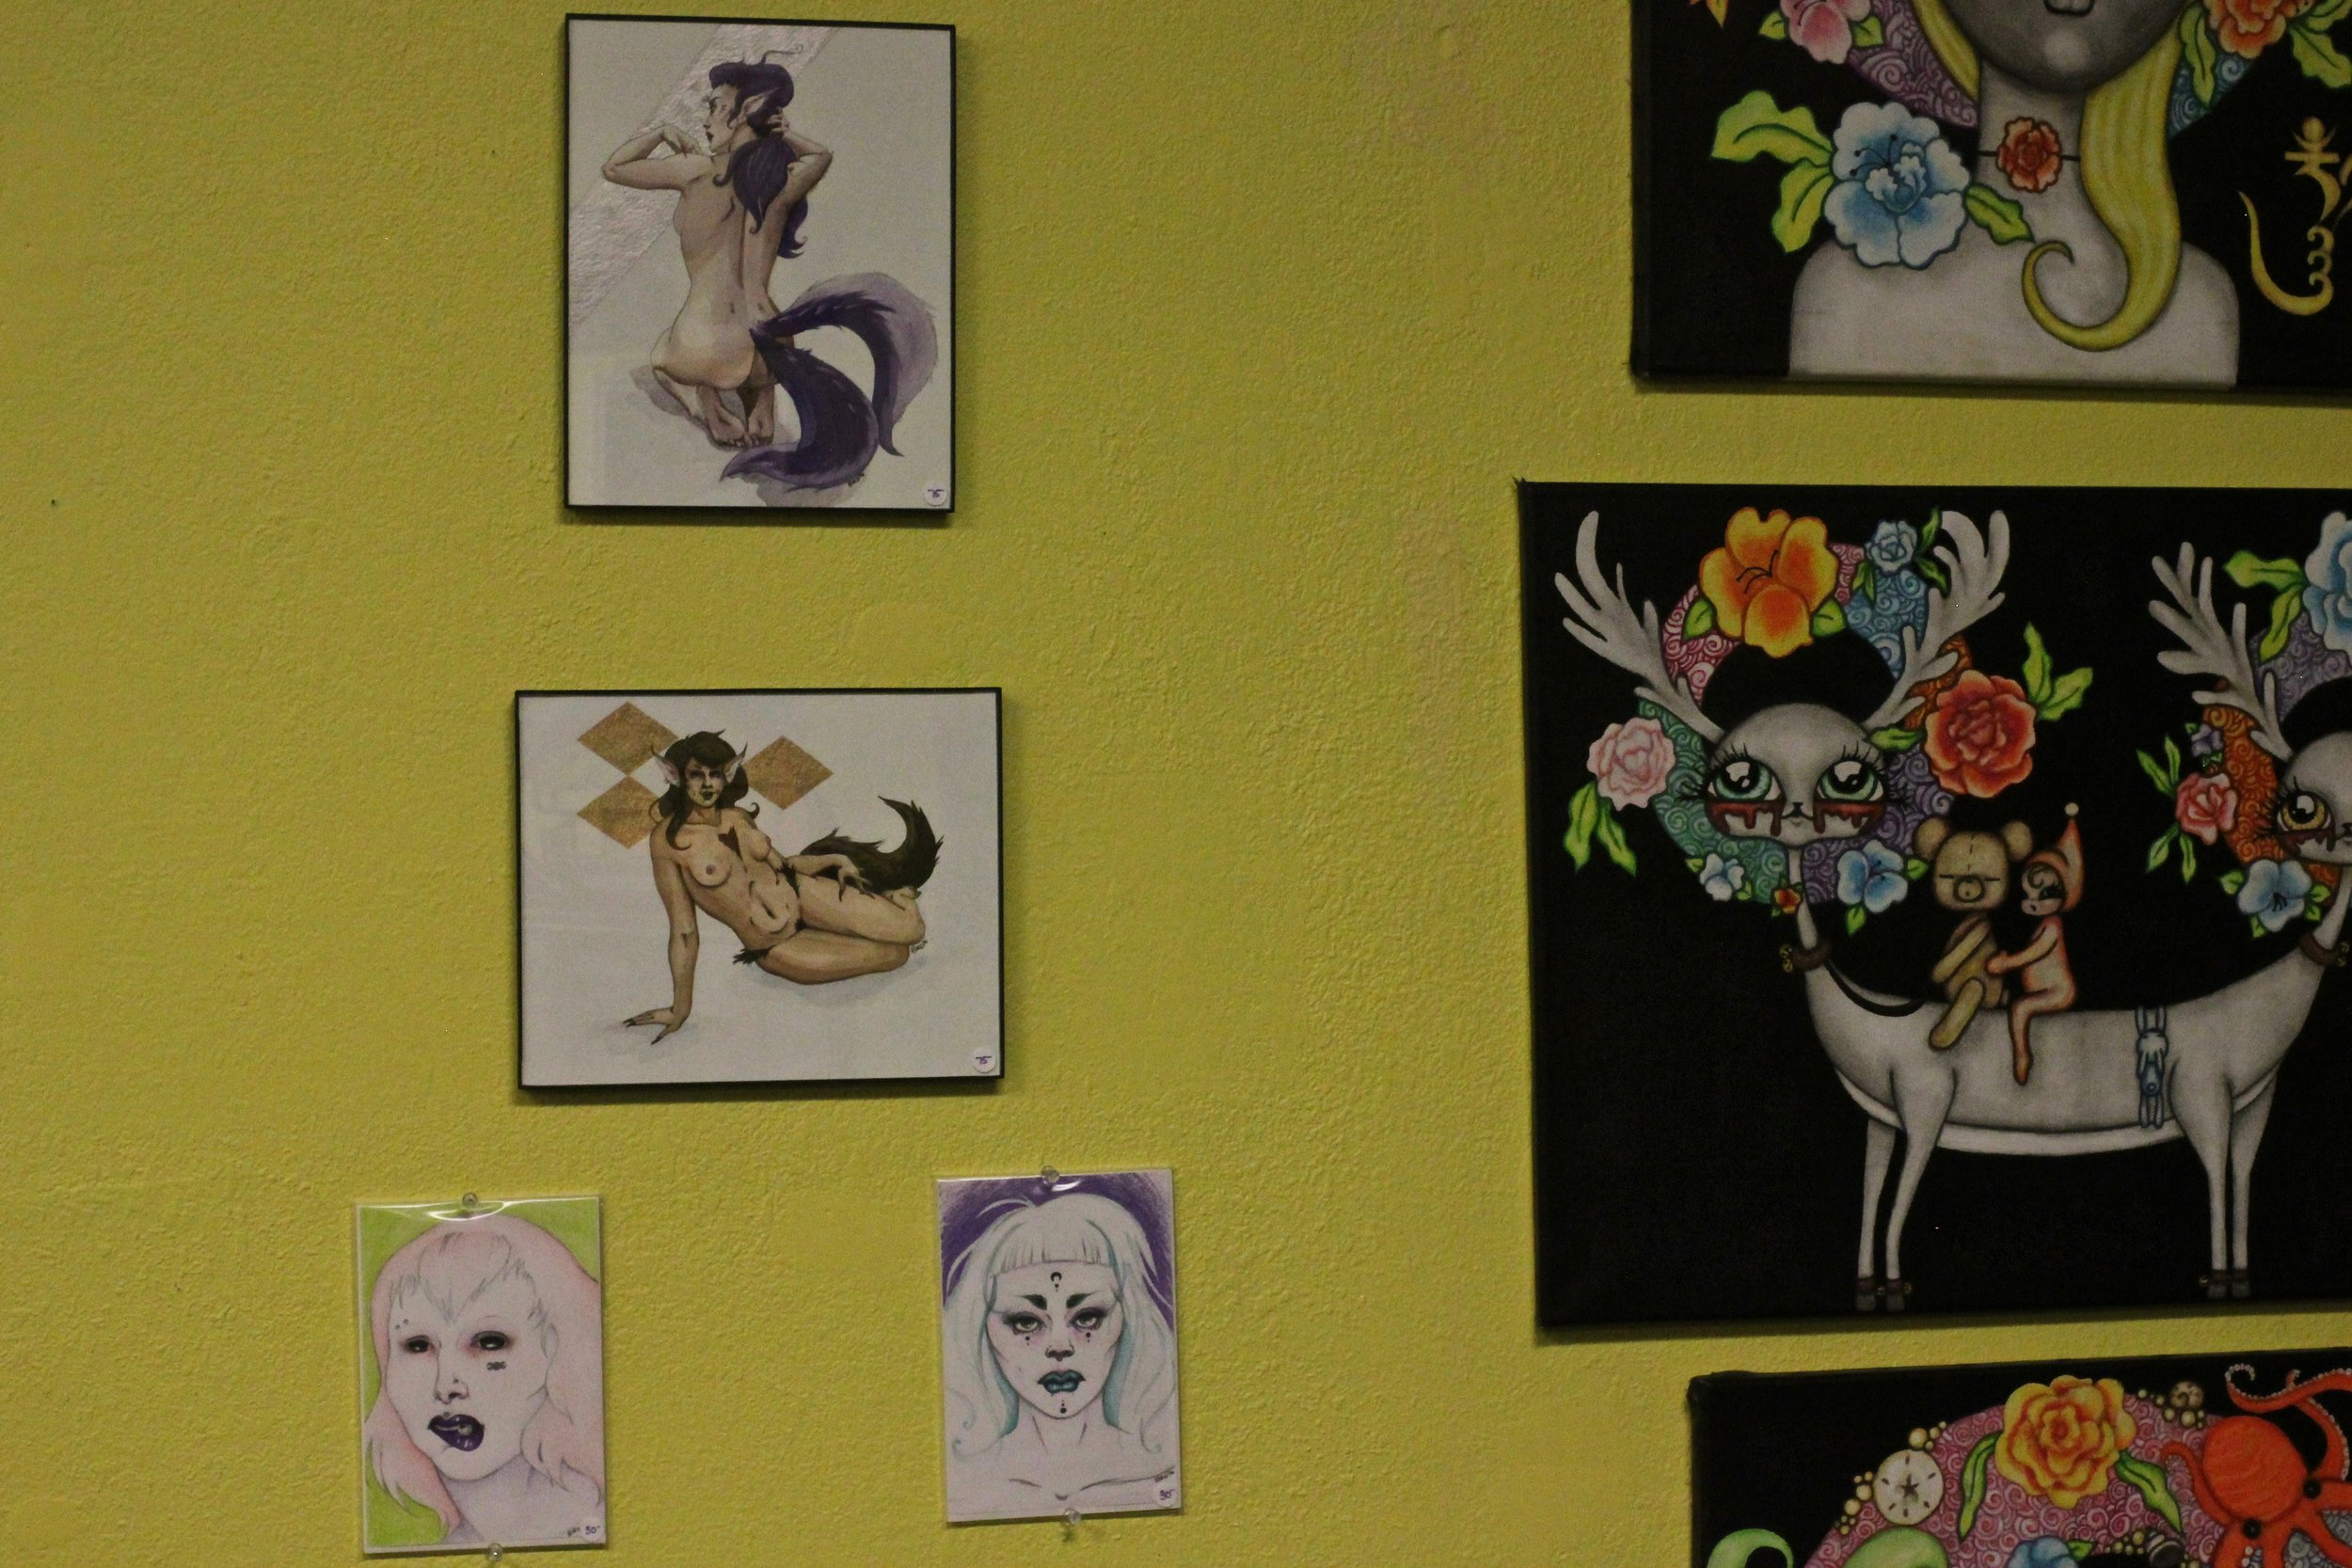 The artwork to the right of mine is by Elizabeth Carmella.